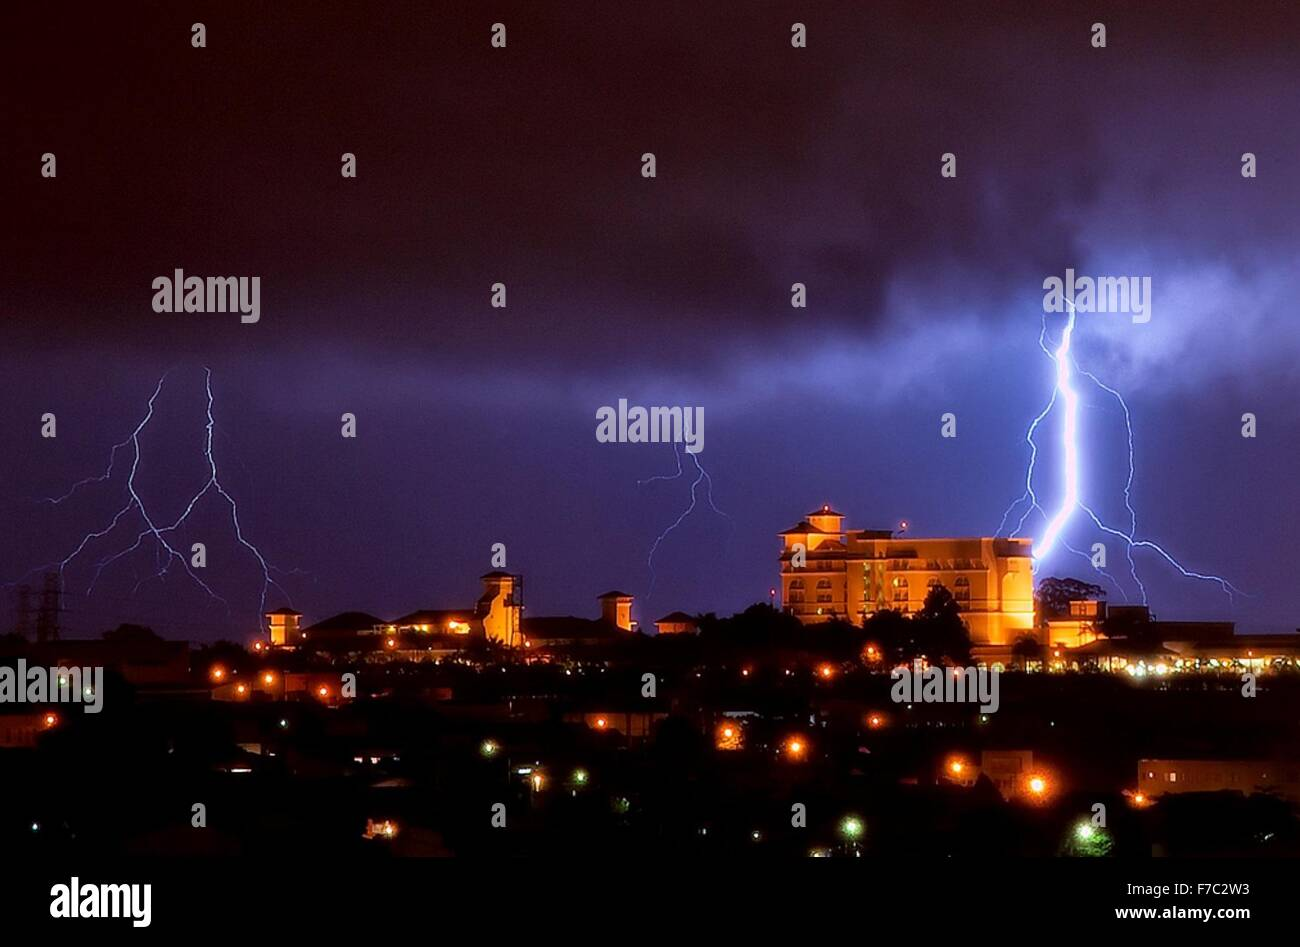 Fork lightning over a city at night - Stock Image